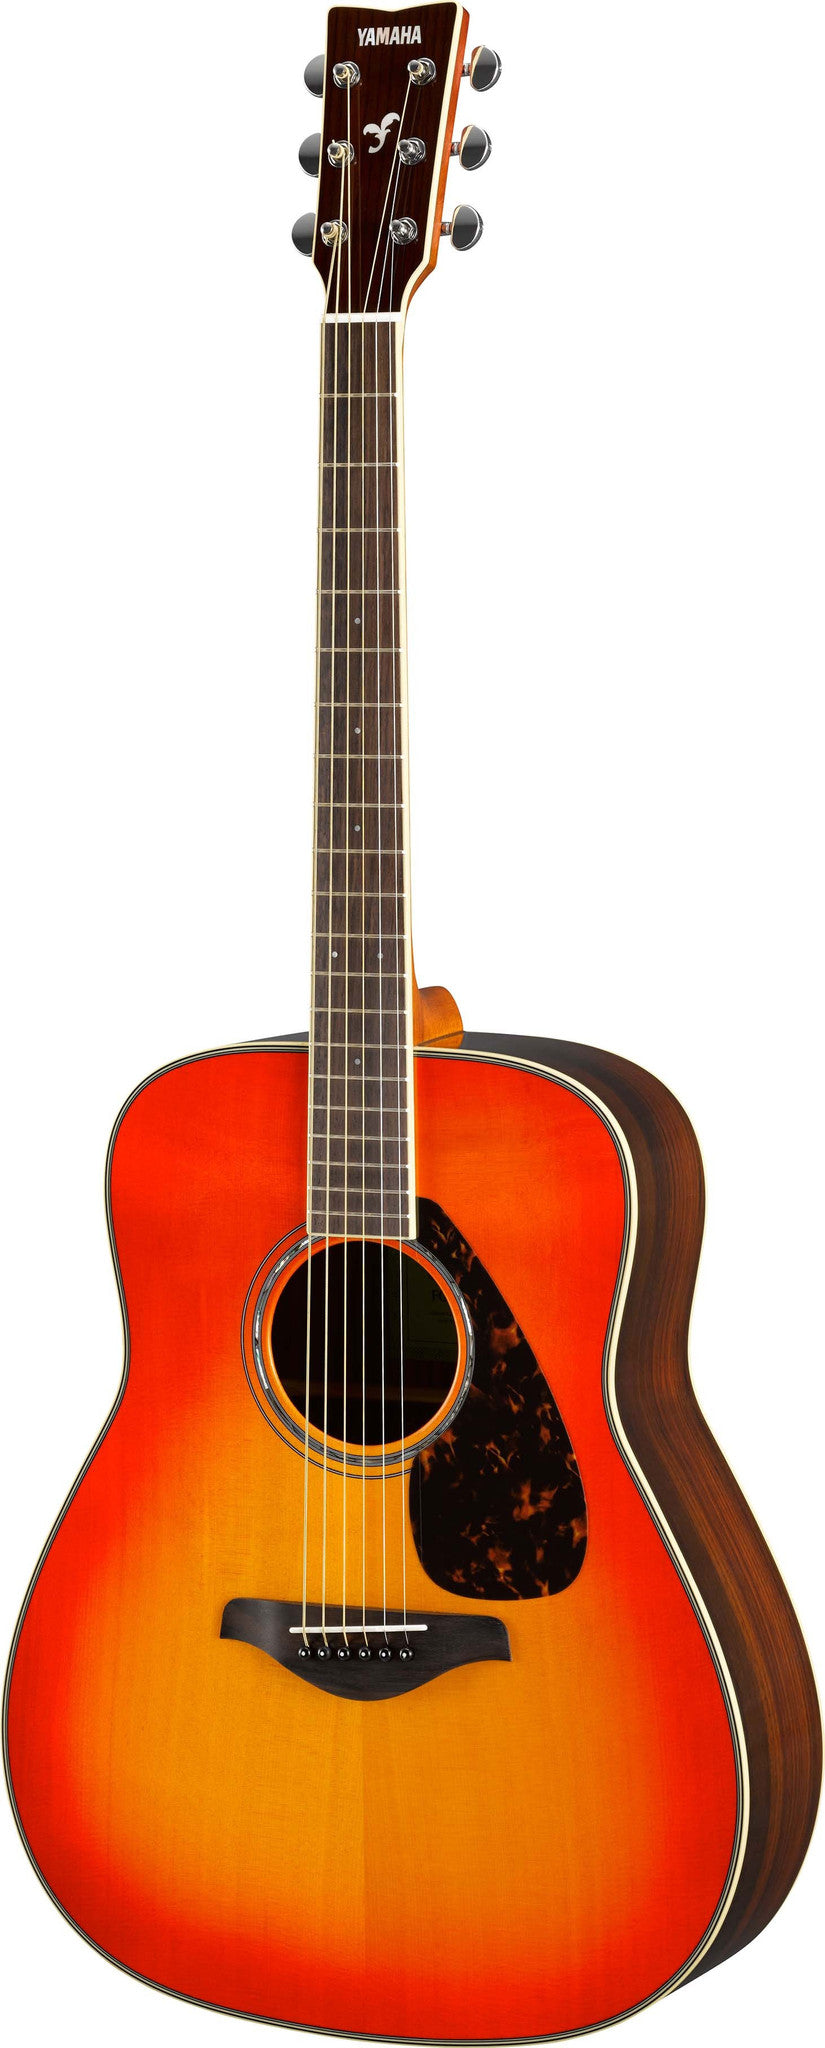 Yamaha FG830 Autumn Burst Dreadnought Acoustic Guitar